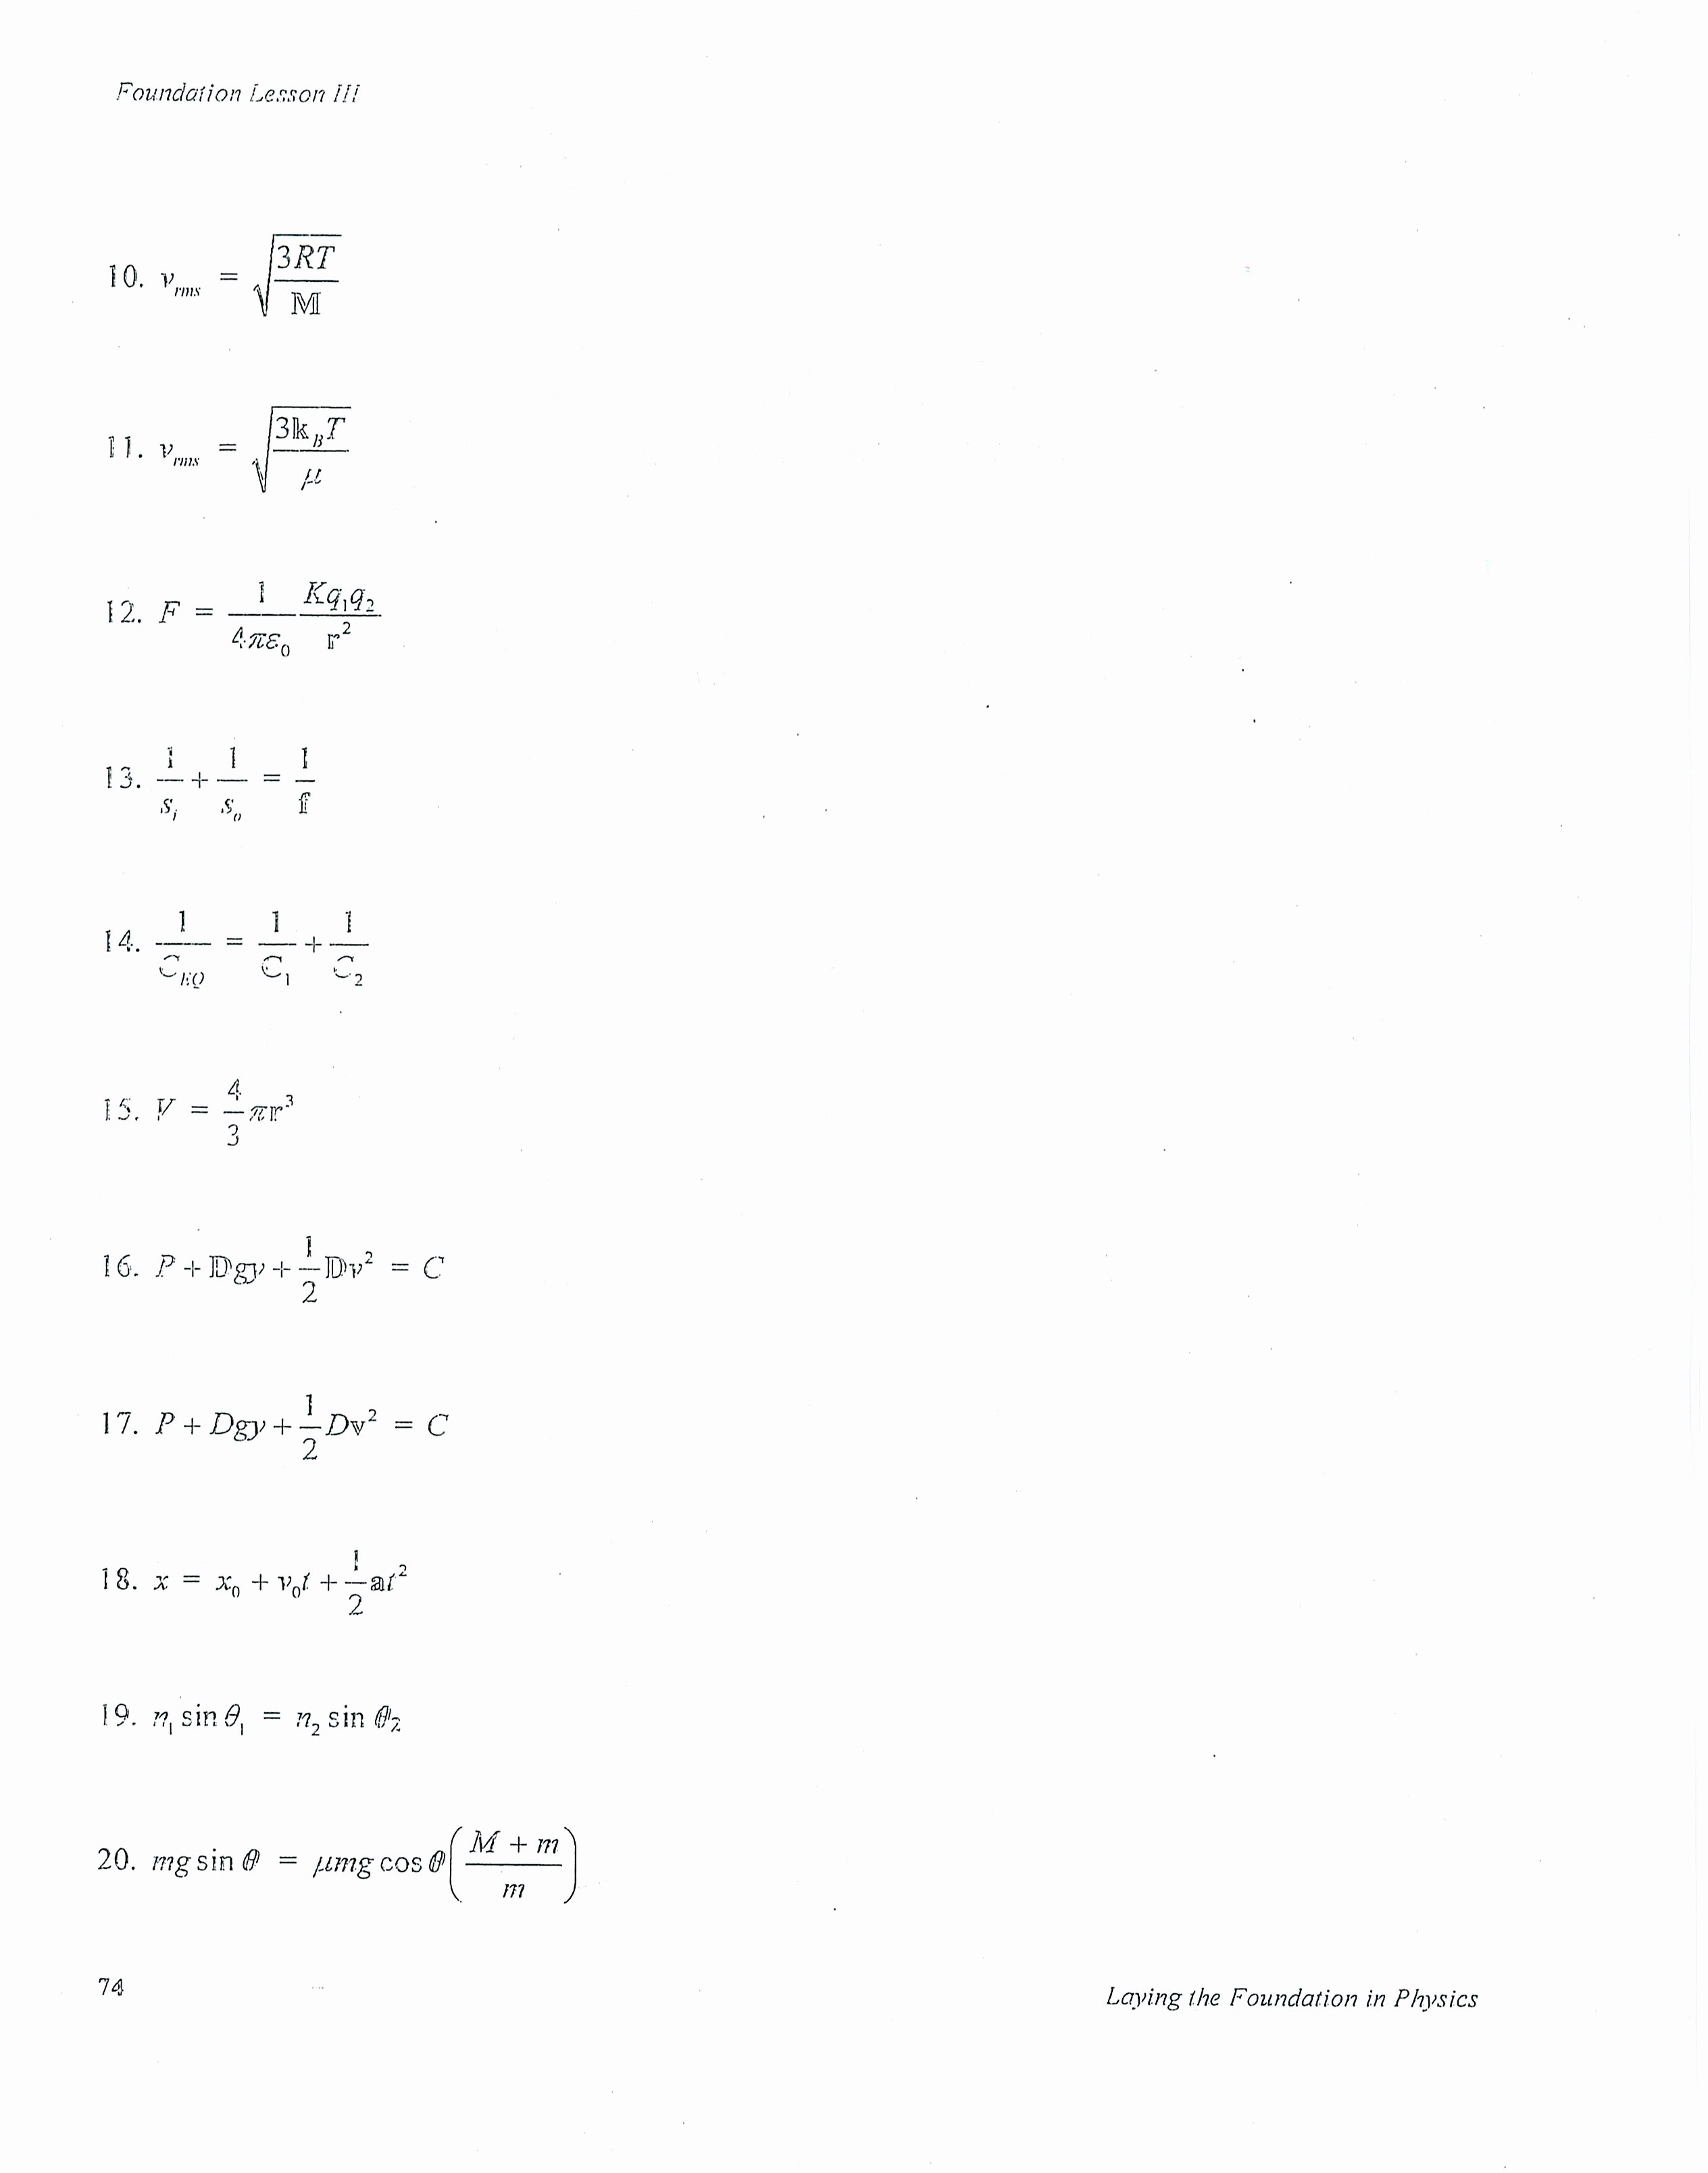 Literal Equations Worksheet Answer Key Beautiful solving Literal Equations for A Variable Worksheet